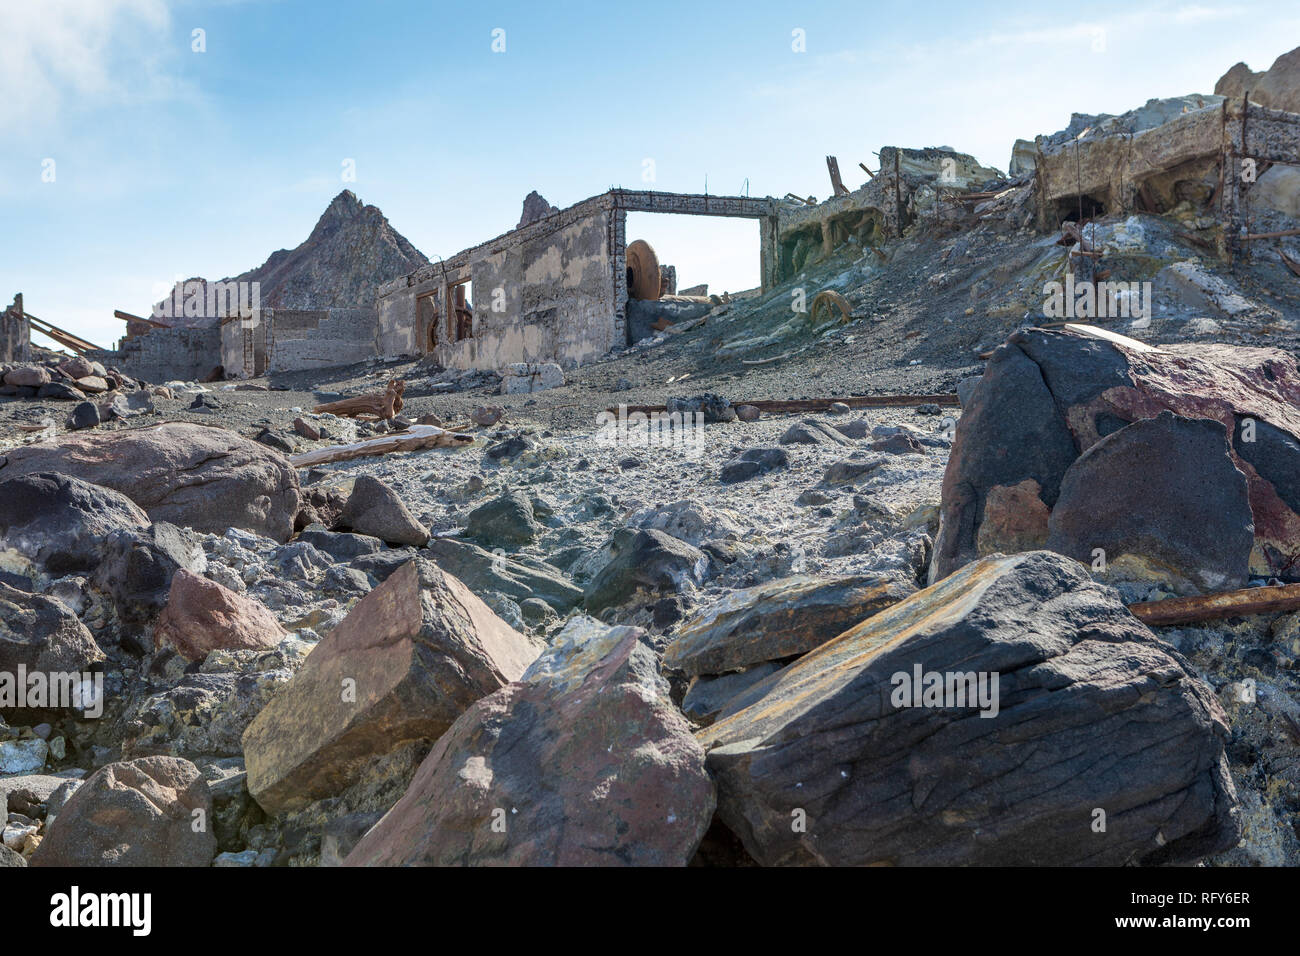 The remains of buildings after a volcanic eruption resembles a war zone. - Stock Image